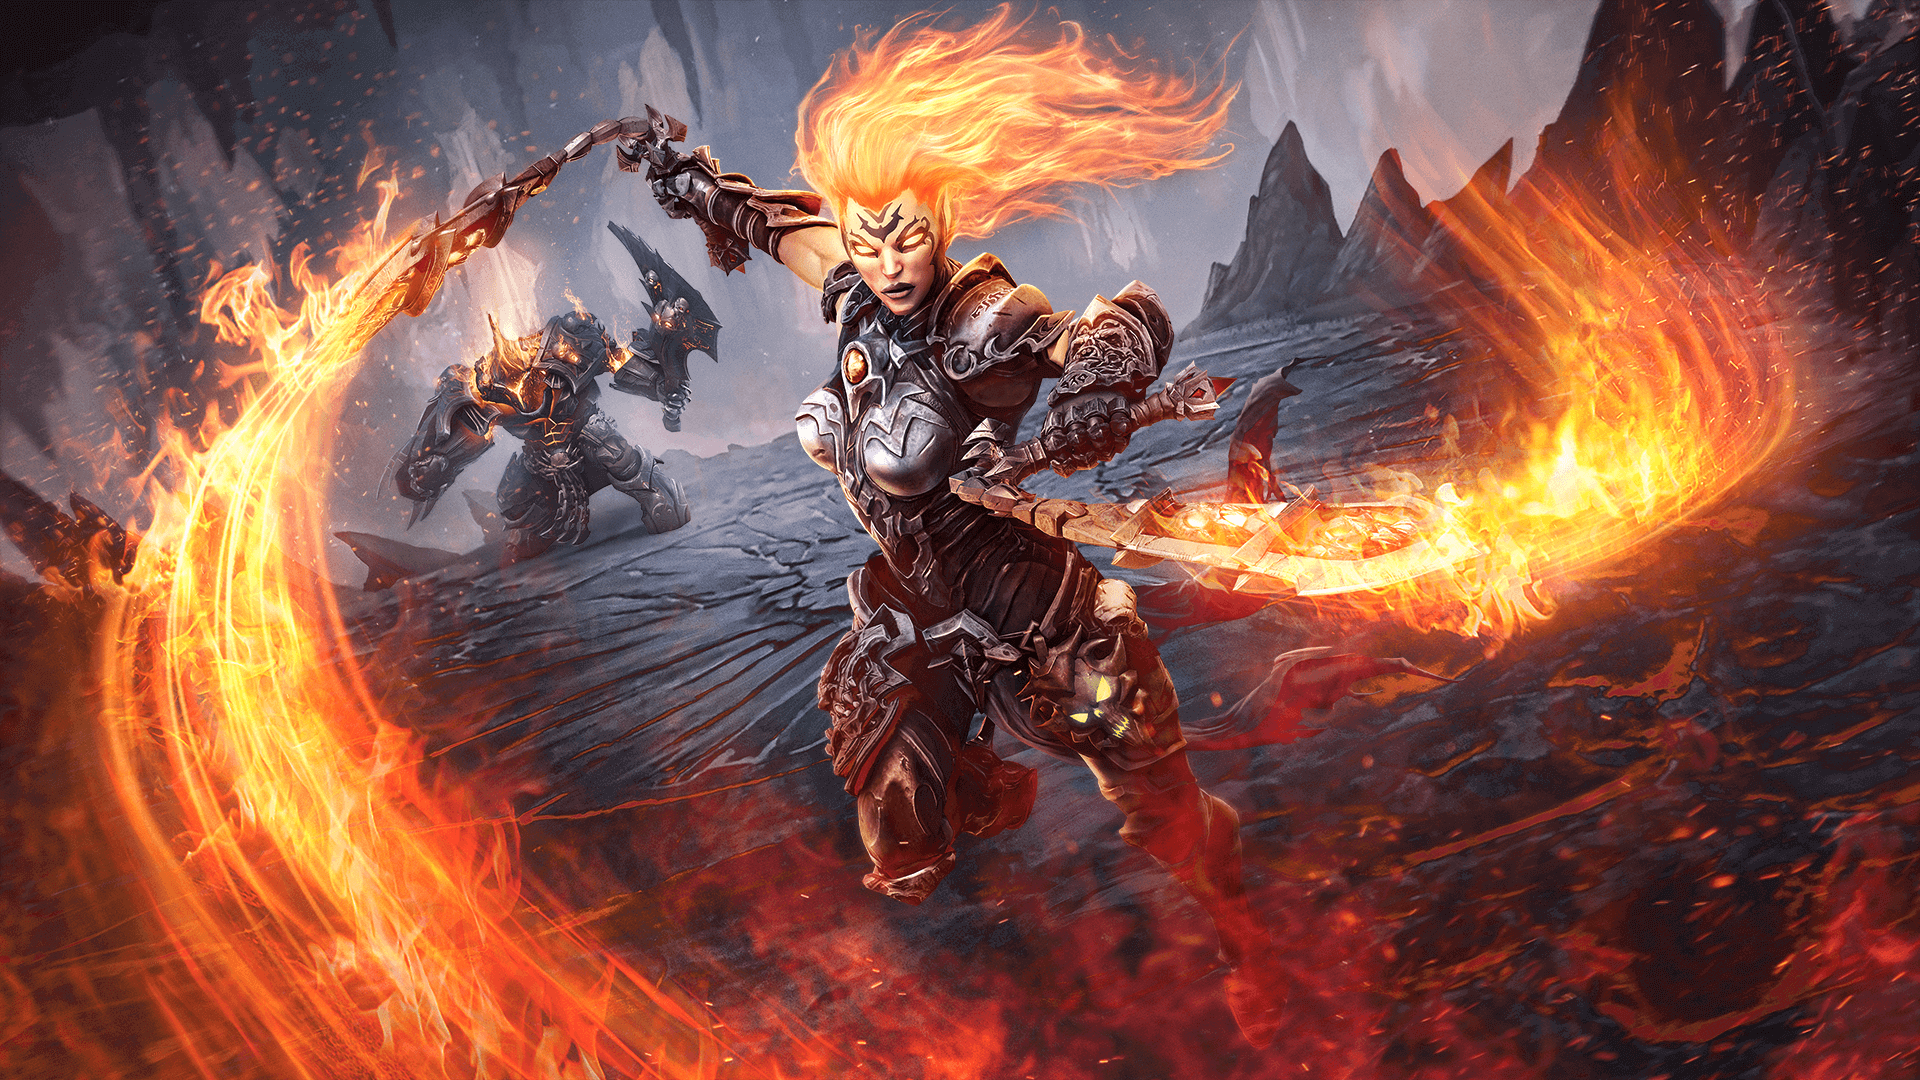 darksiders 3 fury on fire cdkeys